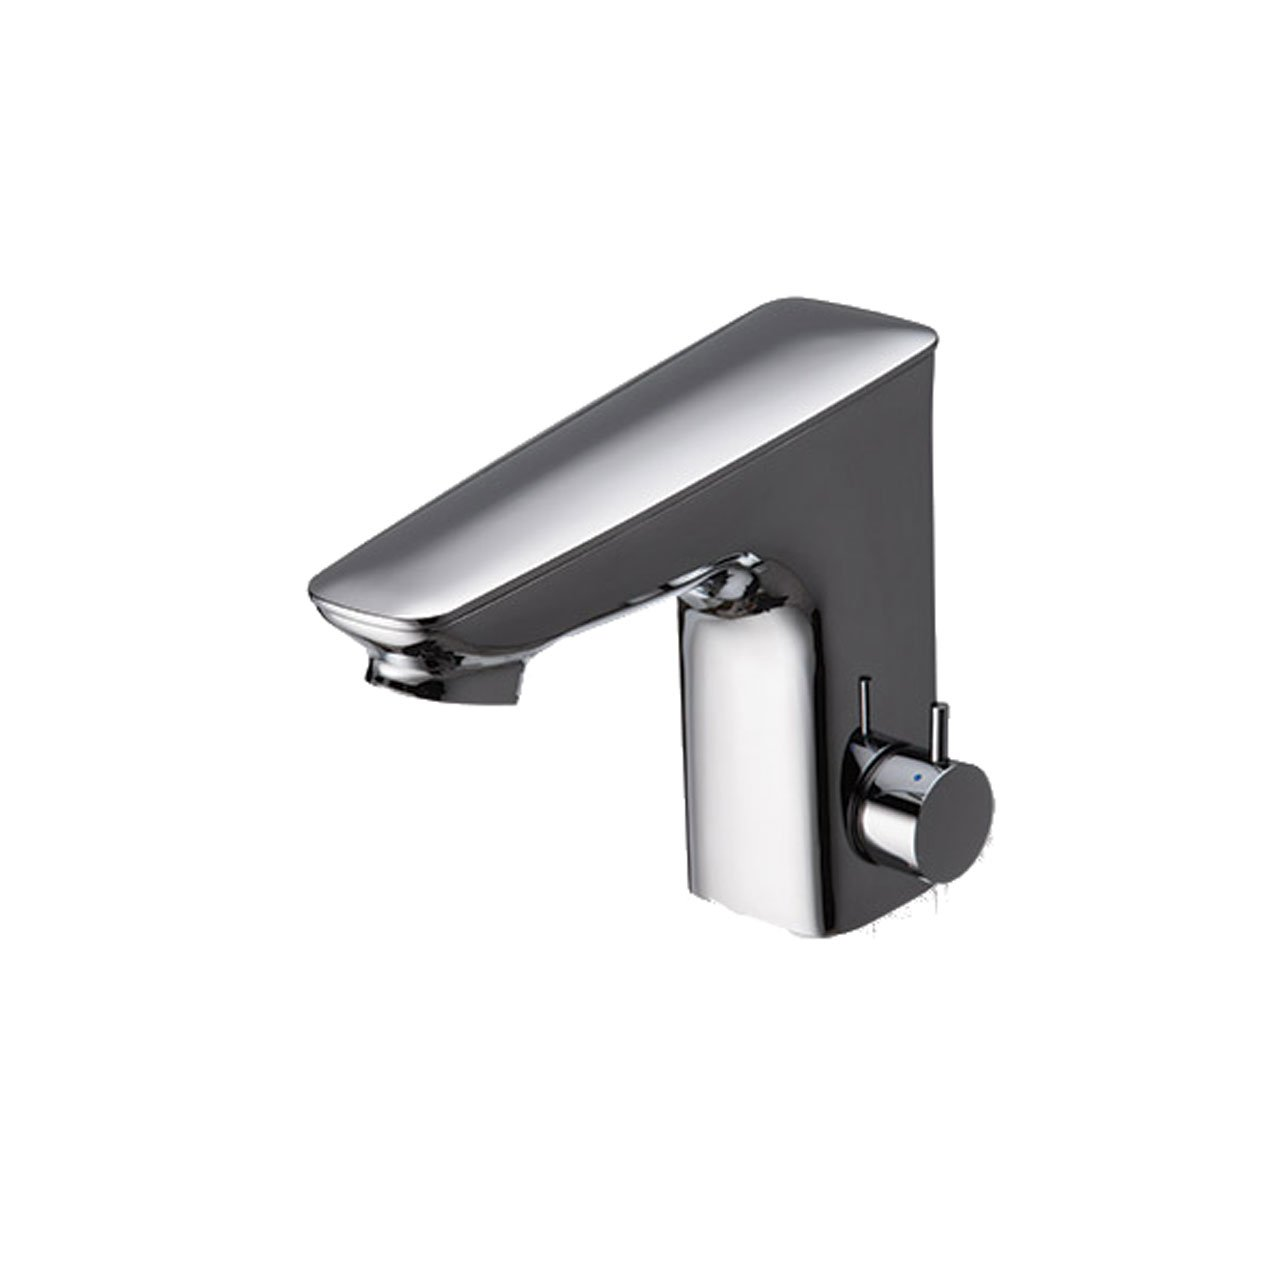 Toto TEL5LI15R#CP Integrated EcoPower Bathroom Sink Faucet, Polished ...